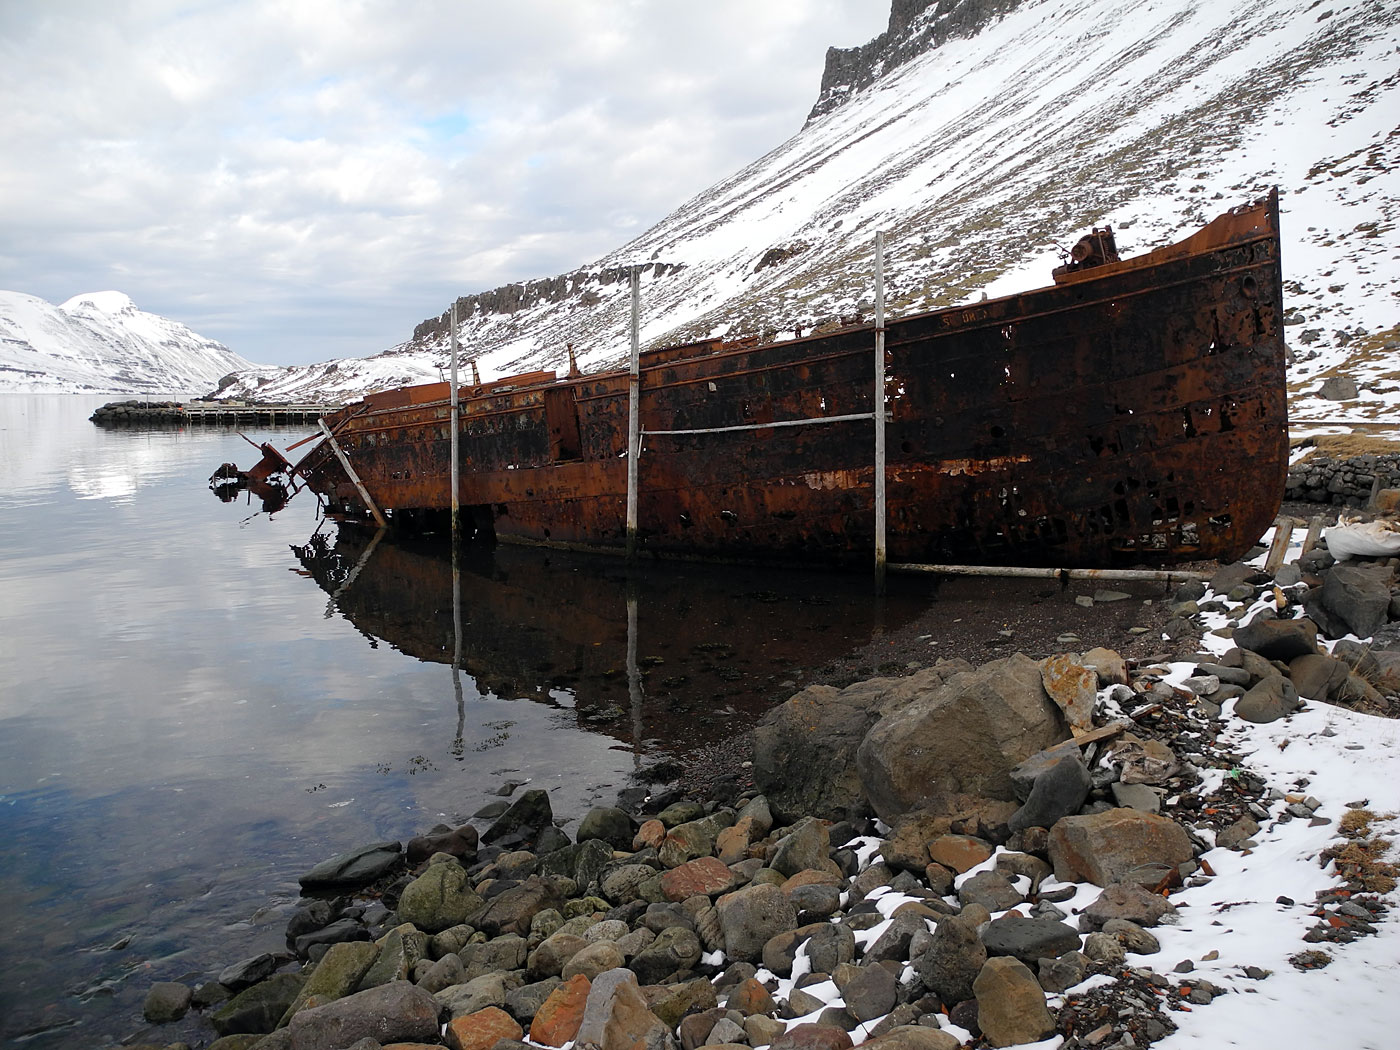 Djúpavík. Around Easter in Djúpavík. Sunday. - The ship M/S Suðurland - getting smaller and smaller. (31 March 2013)